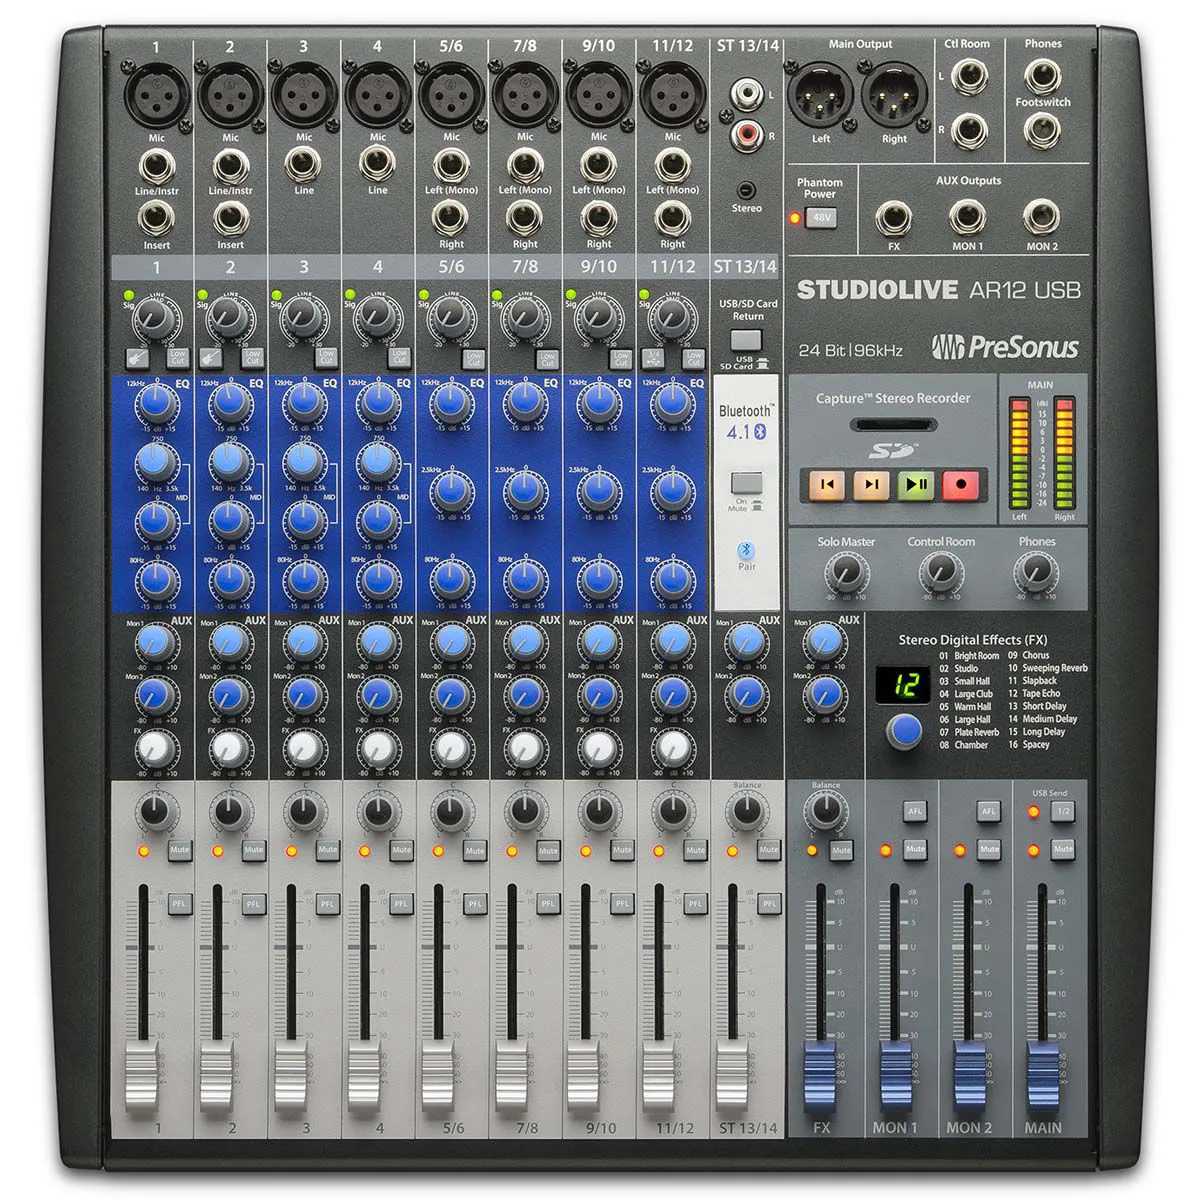 Mesa Analógica e Interface Presonus Studiolive Ar12 USB